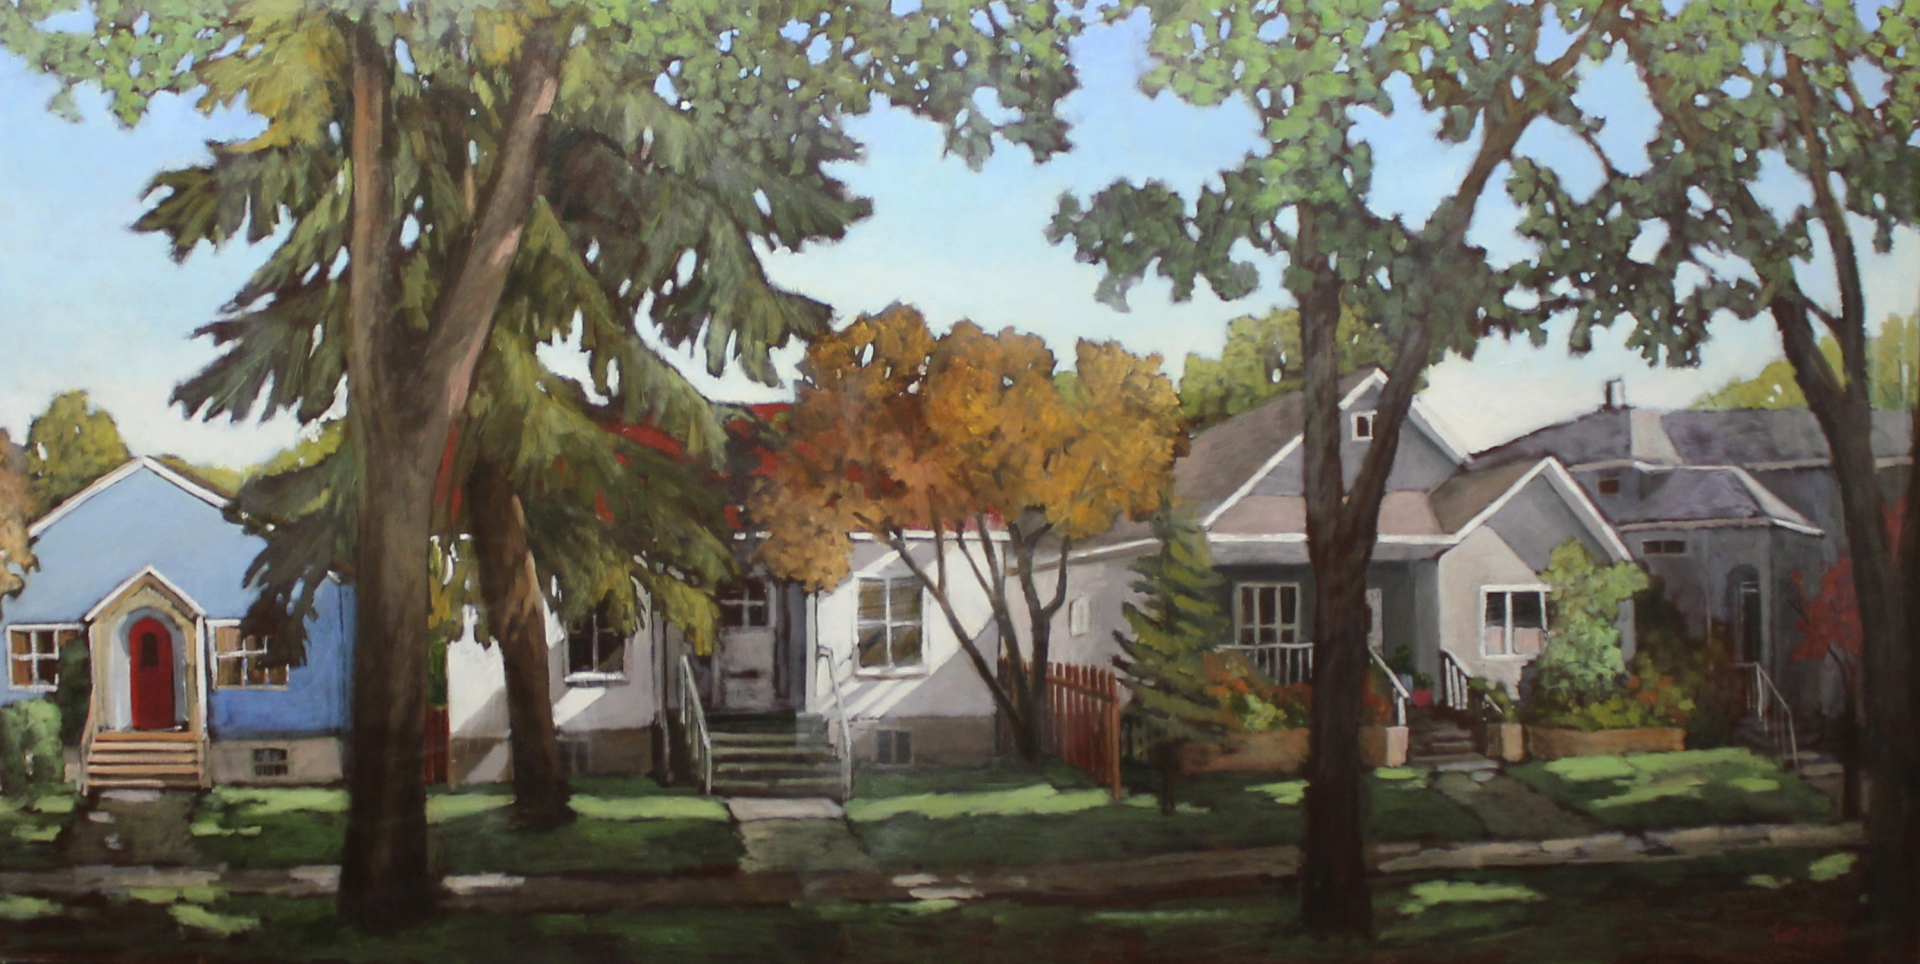 UNIVERSITY AVENUE HOUSES - 36X72 - OIL ON CANVAS - 2015